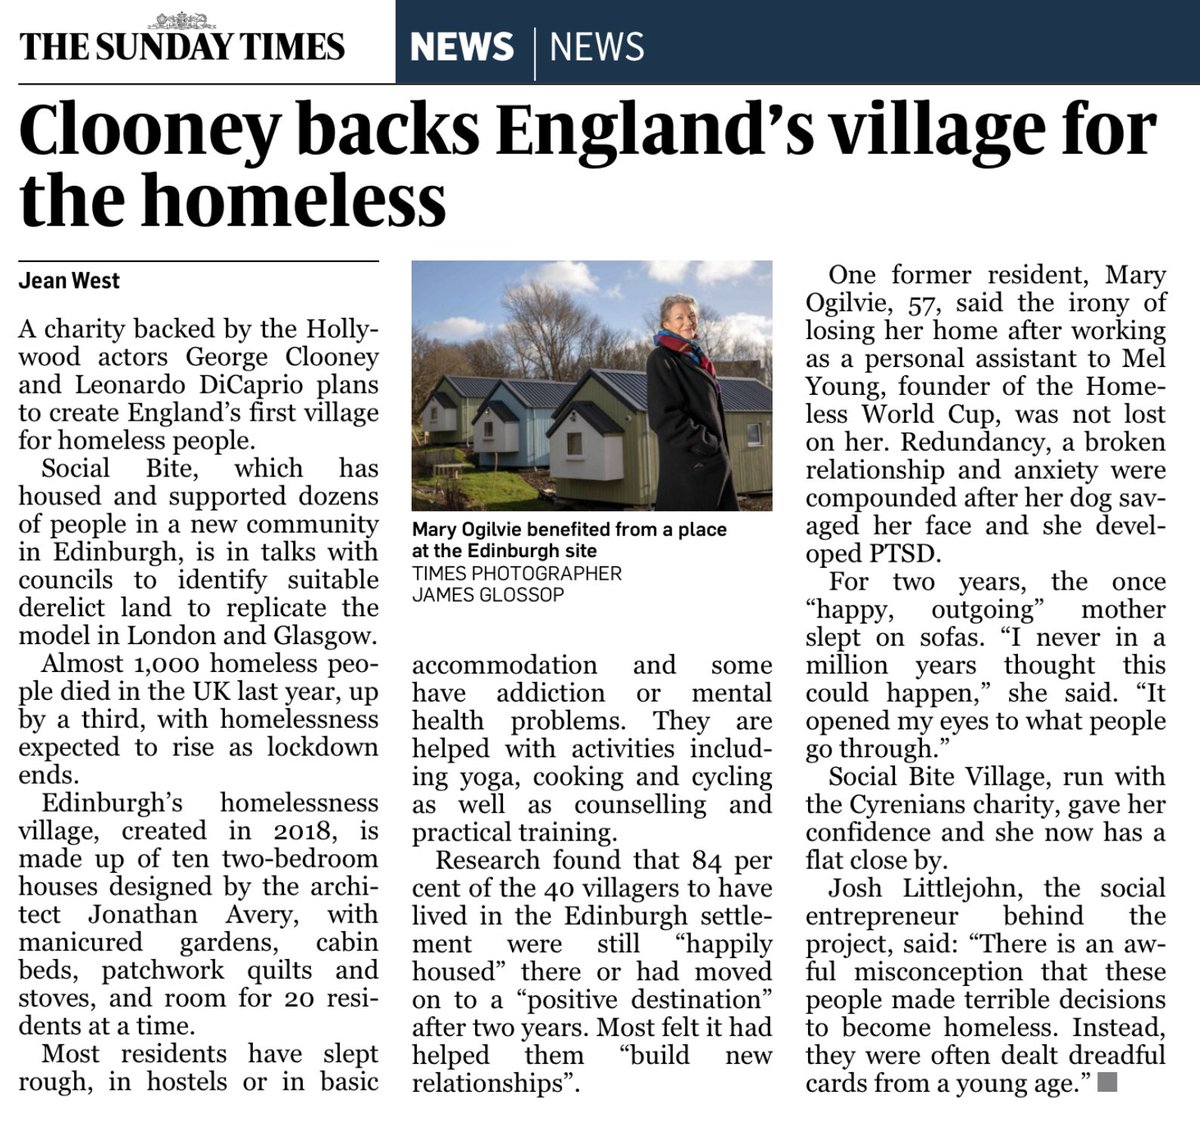 RT @paullewismoney: Homelessness is easy to end. Give them homes. I have been saying this for fifty years. https://t.co/V7NTIvoura